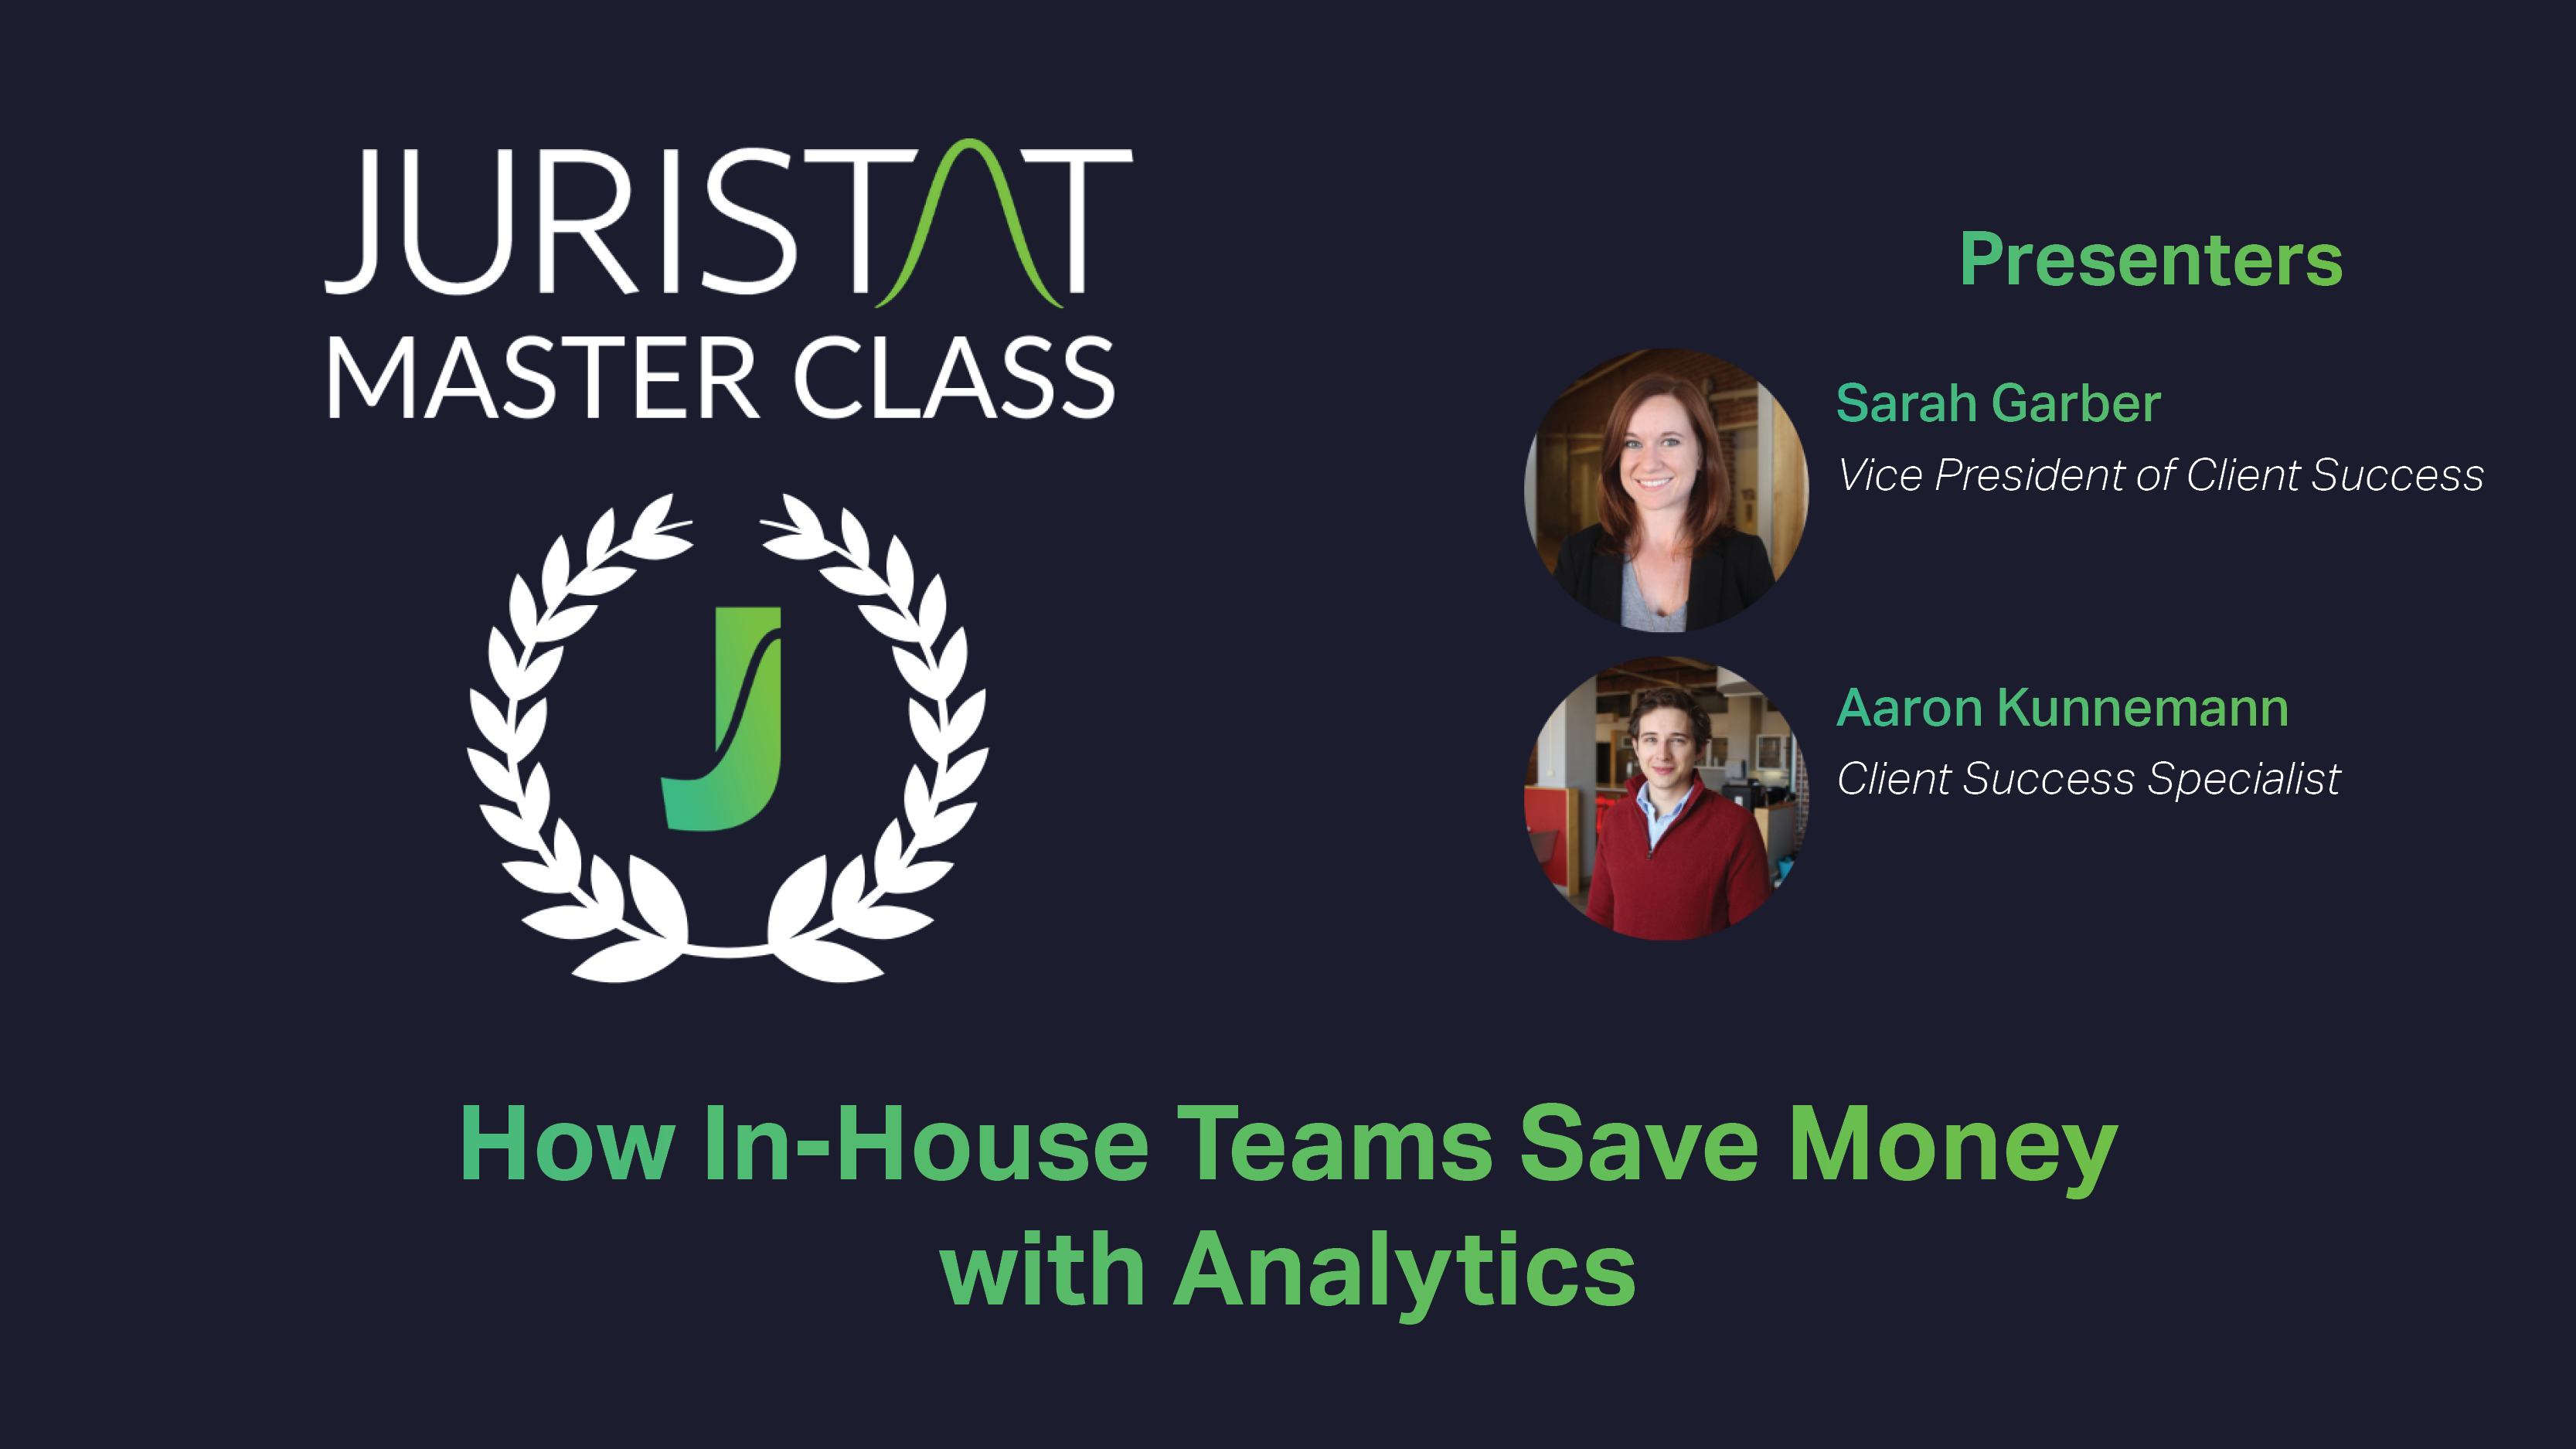 In-House Teams Save Money